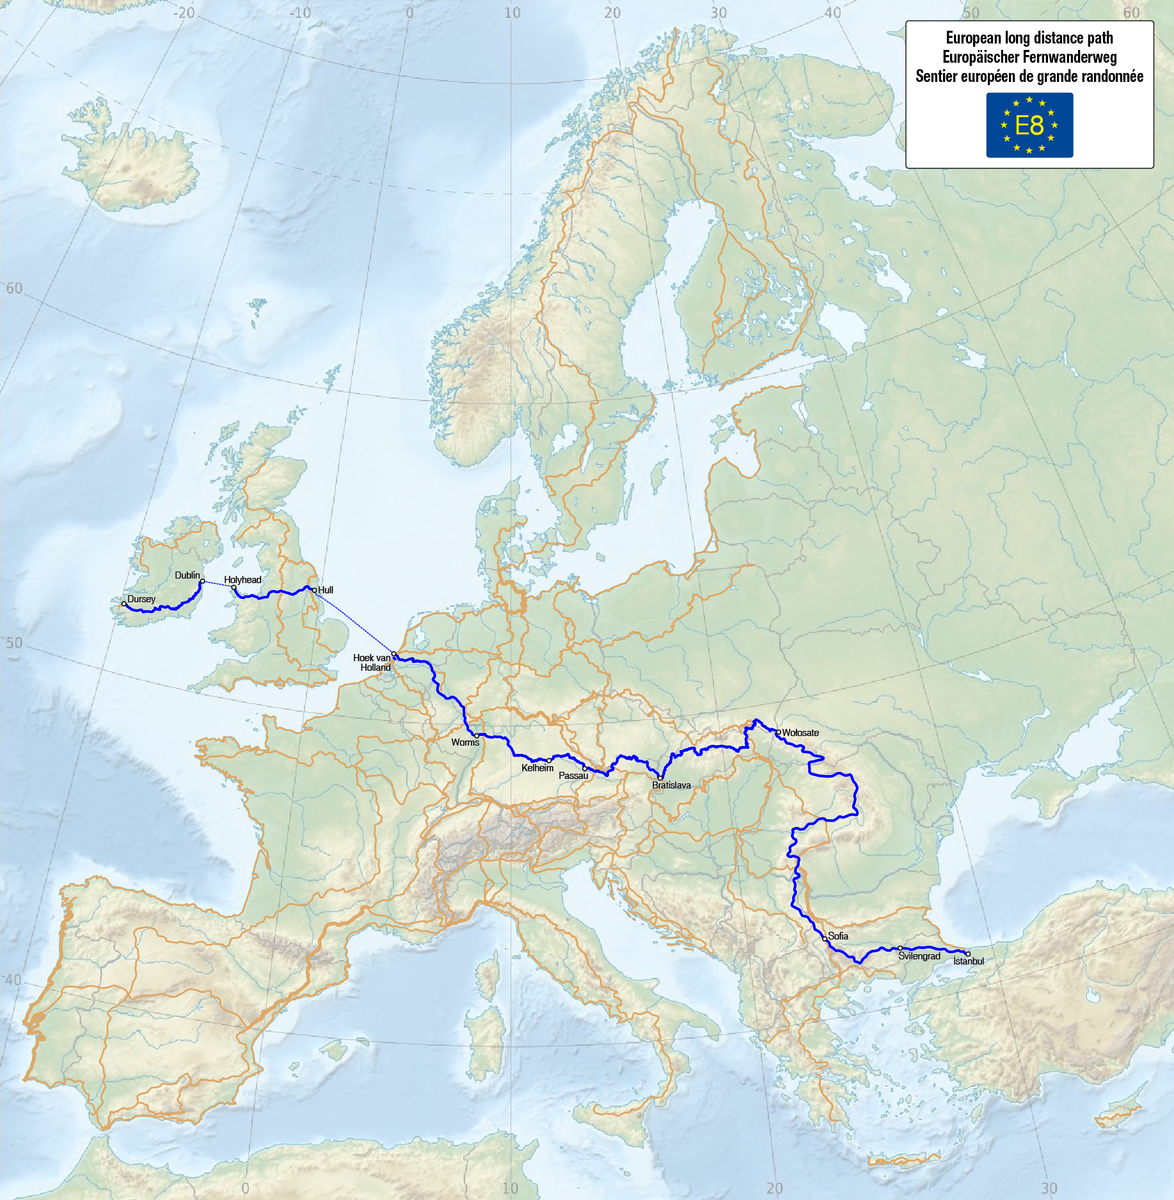 E8 - European Long Distance Path